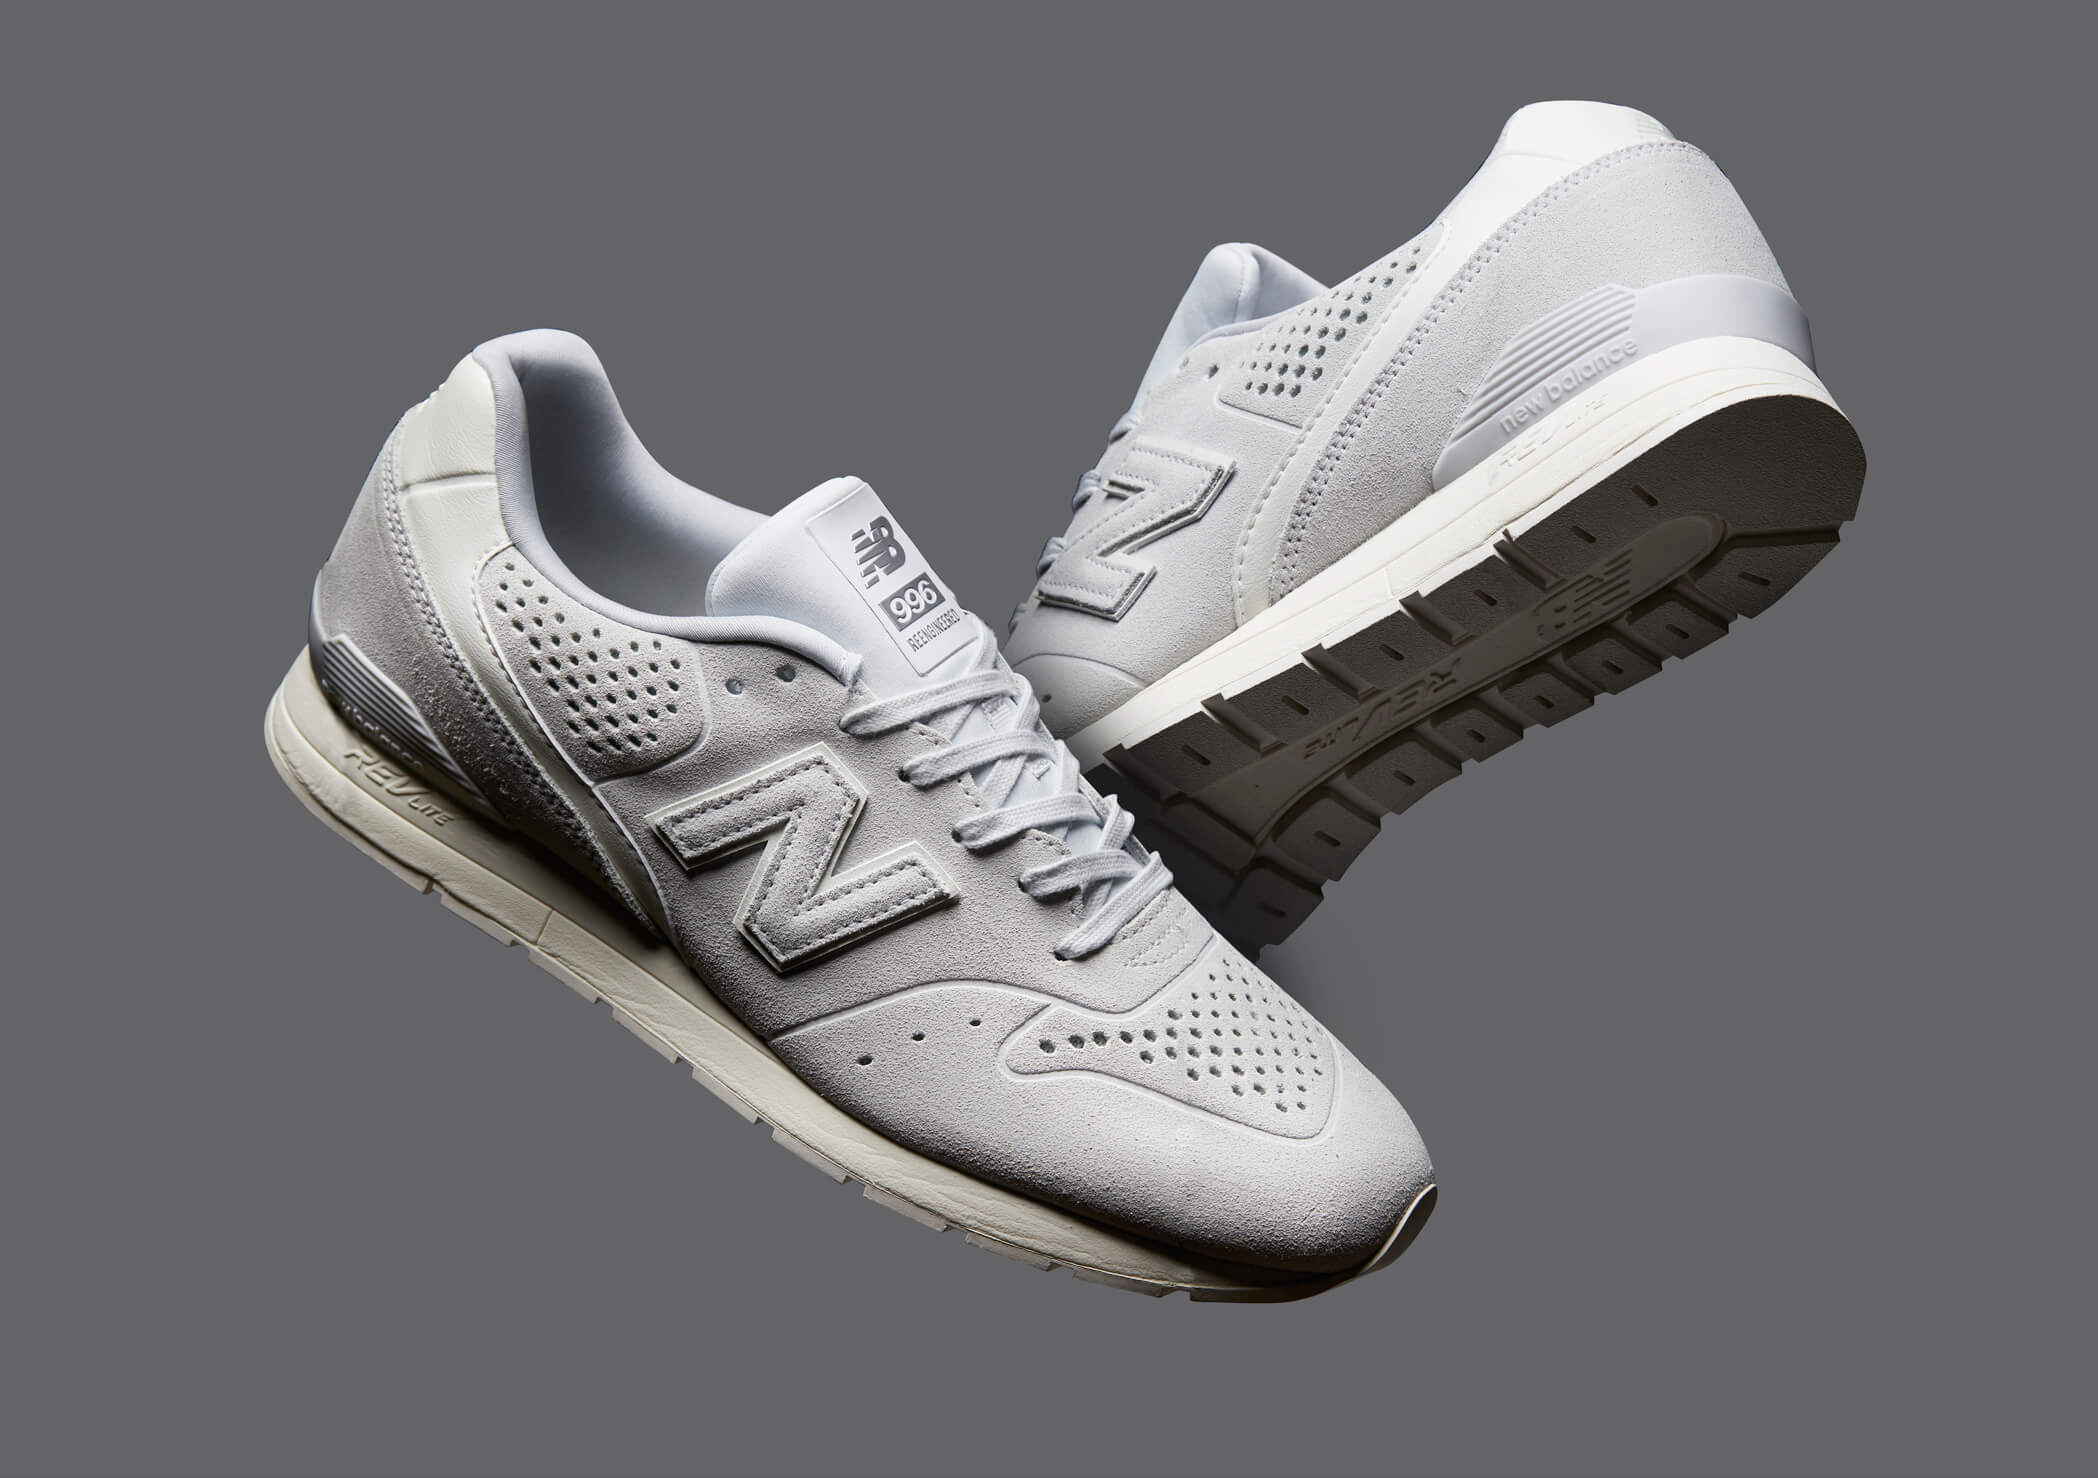 Creme_creative_NewBalance_Test_Shoot_03.jpg